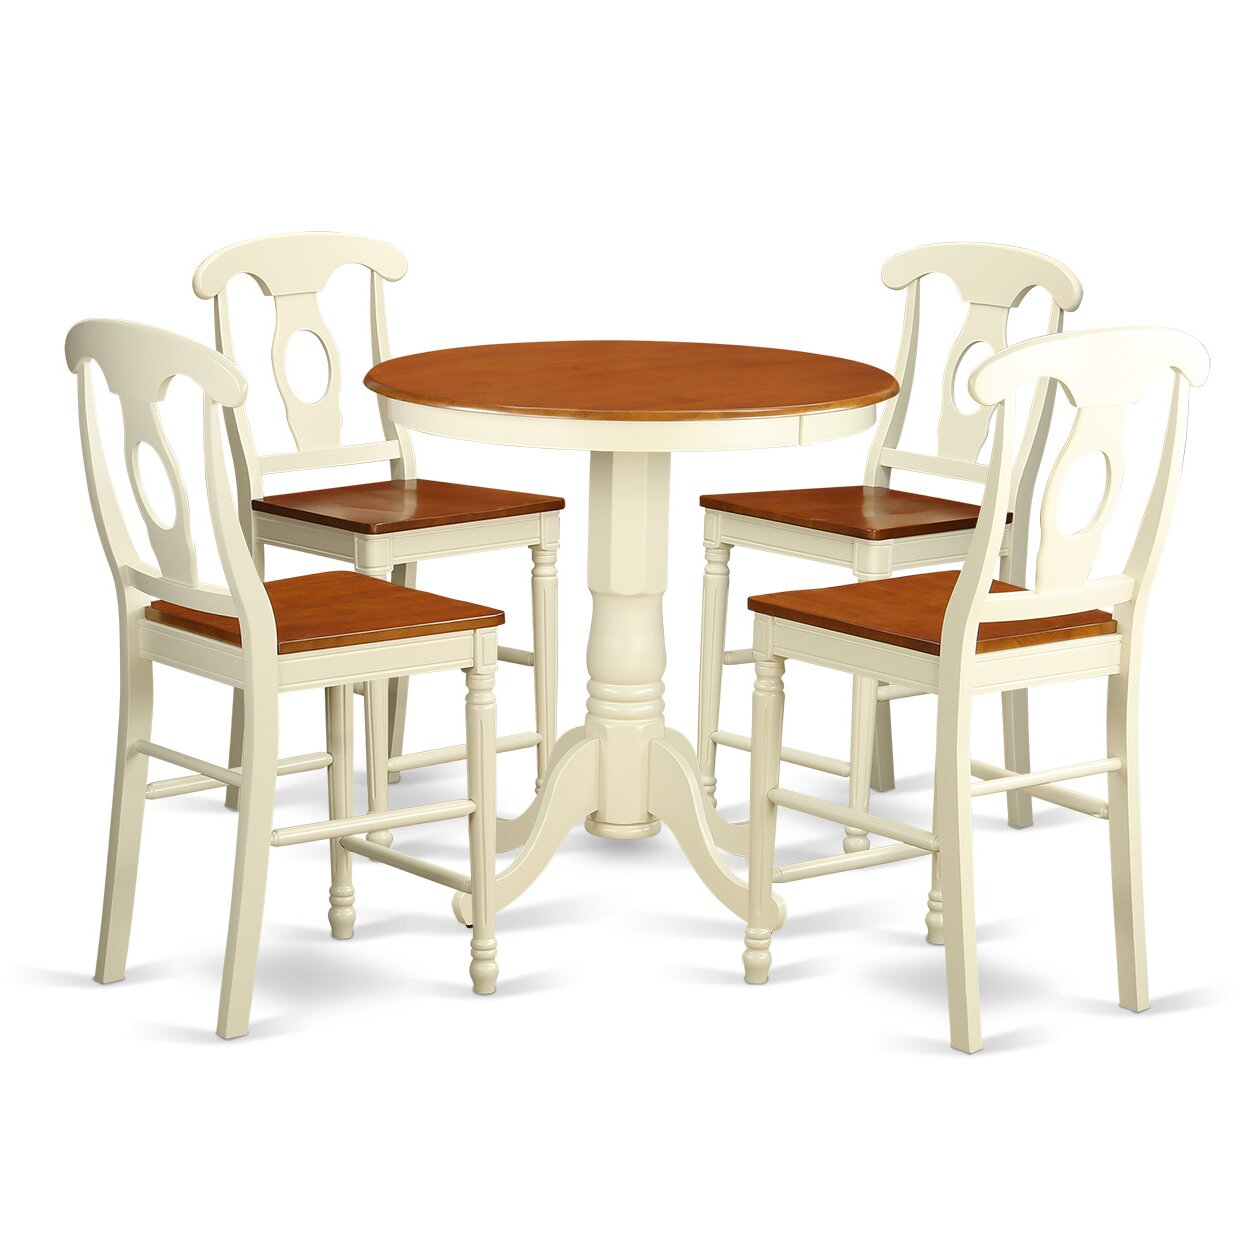 East west eden 5 piece counter height pub table set wayfair for Dining room sets 4 chairs